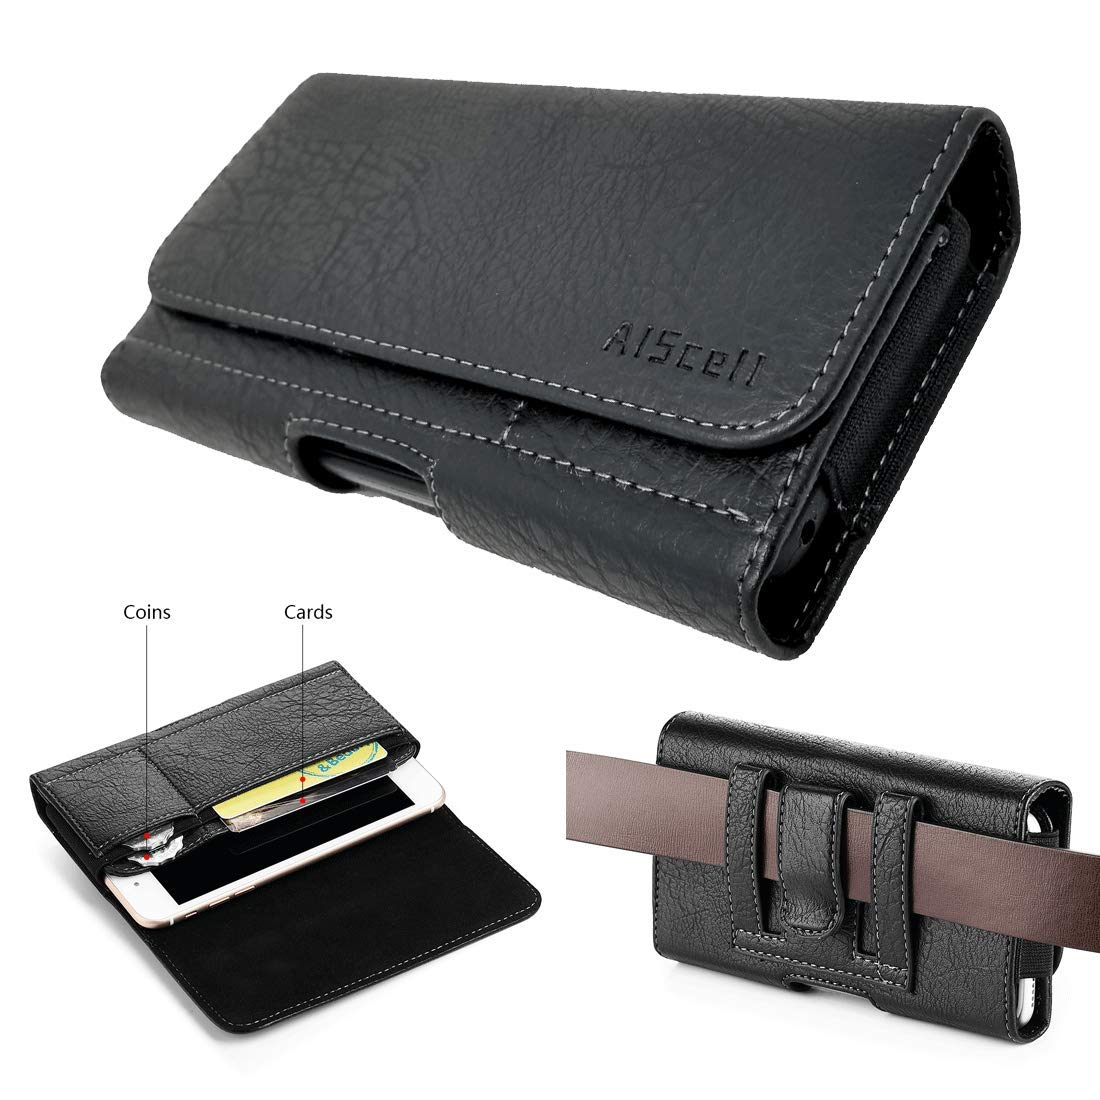 beded34fc96d AISCELL Wallet Pouch for Moto Z4, Moto Z3 Play,Moto Z3,G7 Plus,Moto  G7,REVVLRY+, Black Faux Leather Pouch Card Slot Case Belt Loop Holster Fits  Phone ...